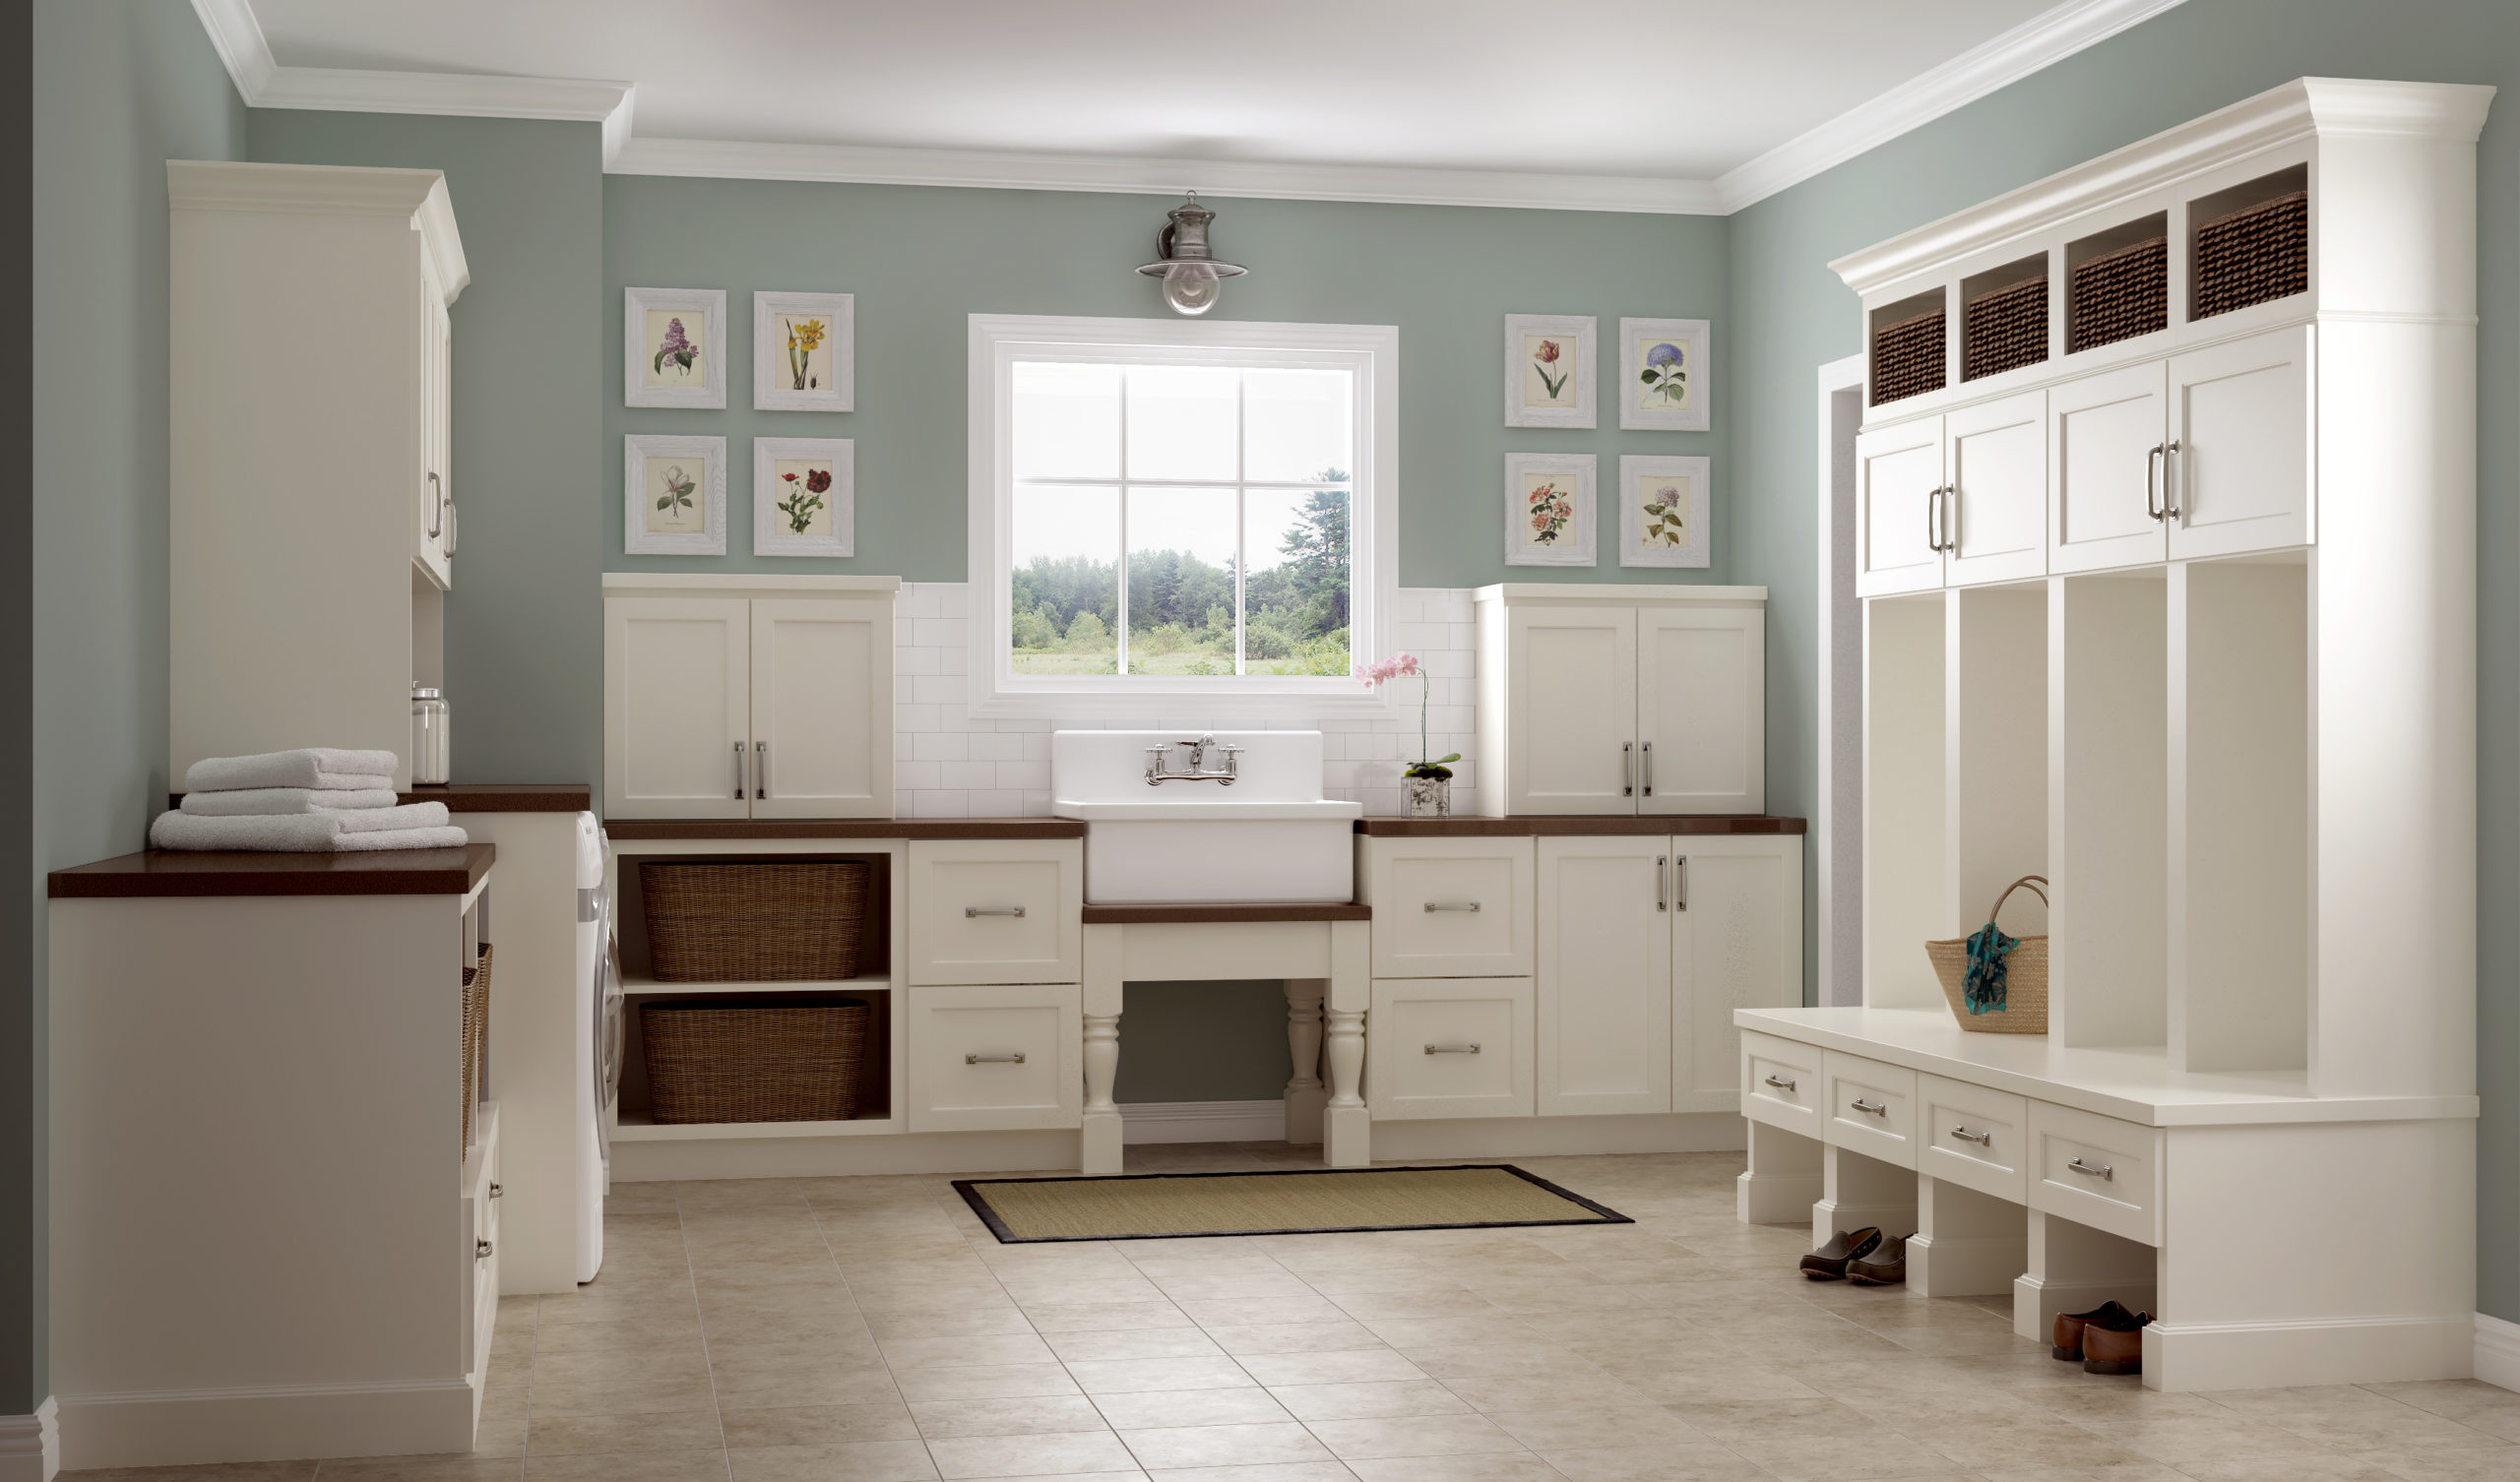 Home Addition Design And Remodeling Cary Raleigh Chapel Hill Nc